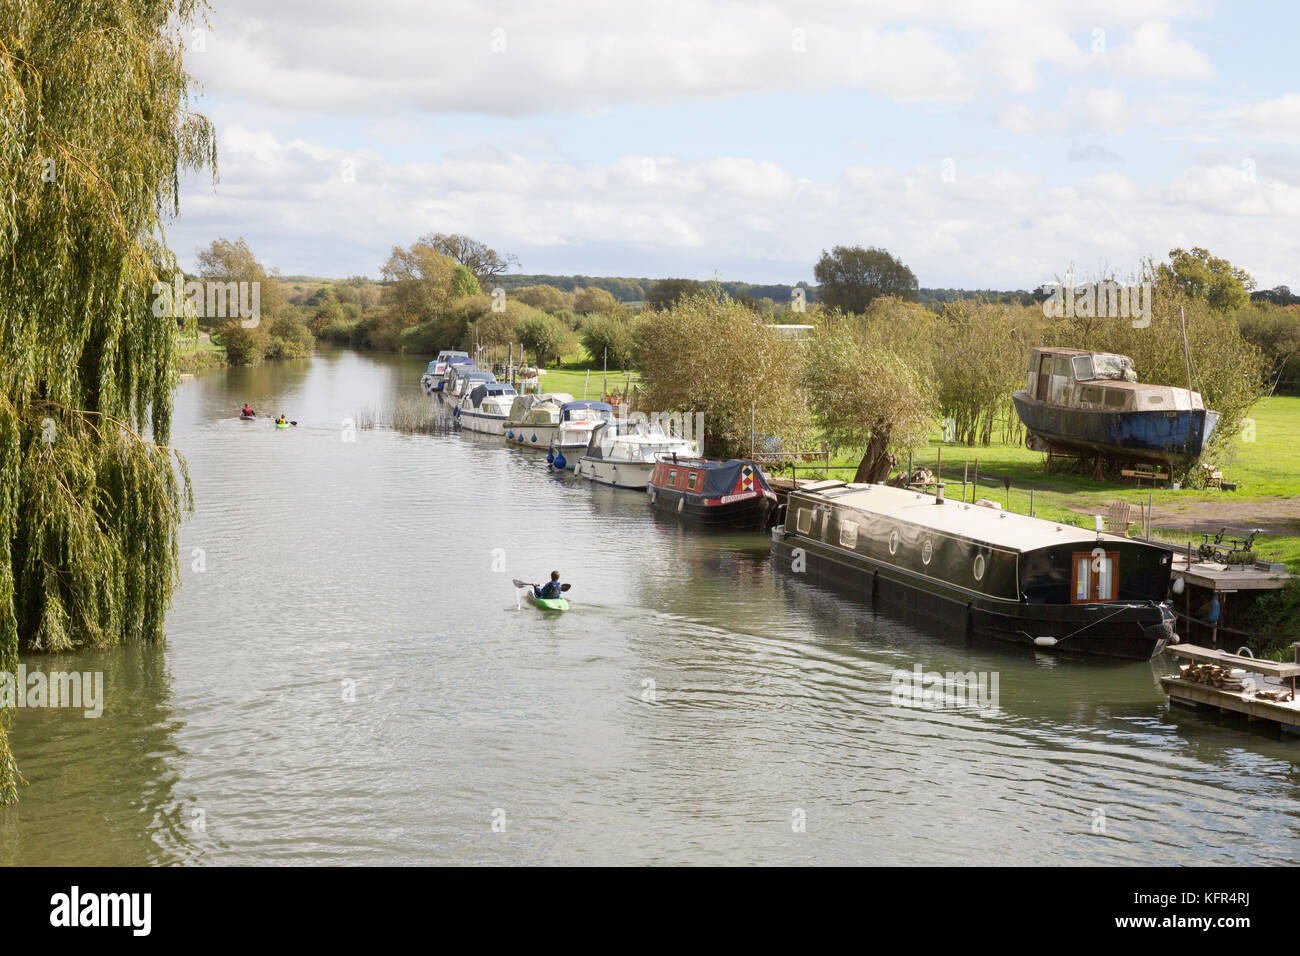 River Thames Oxfordshire, upper reaches at New Bridge, Northmoor, near Witney, Oxfordshire UK - Stock Image